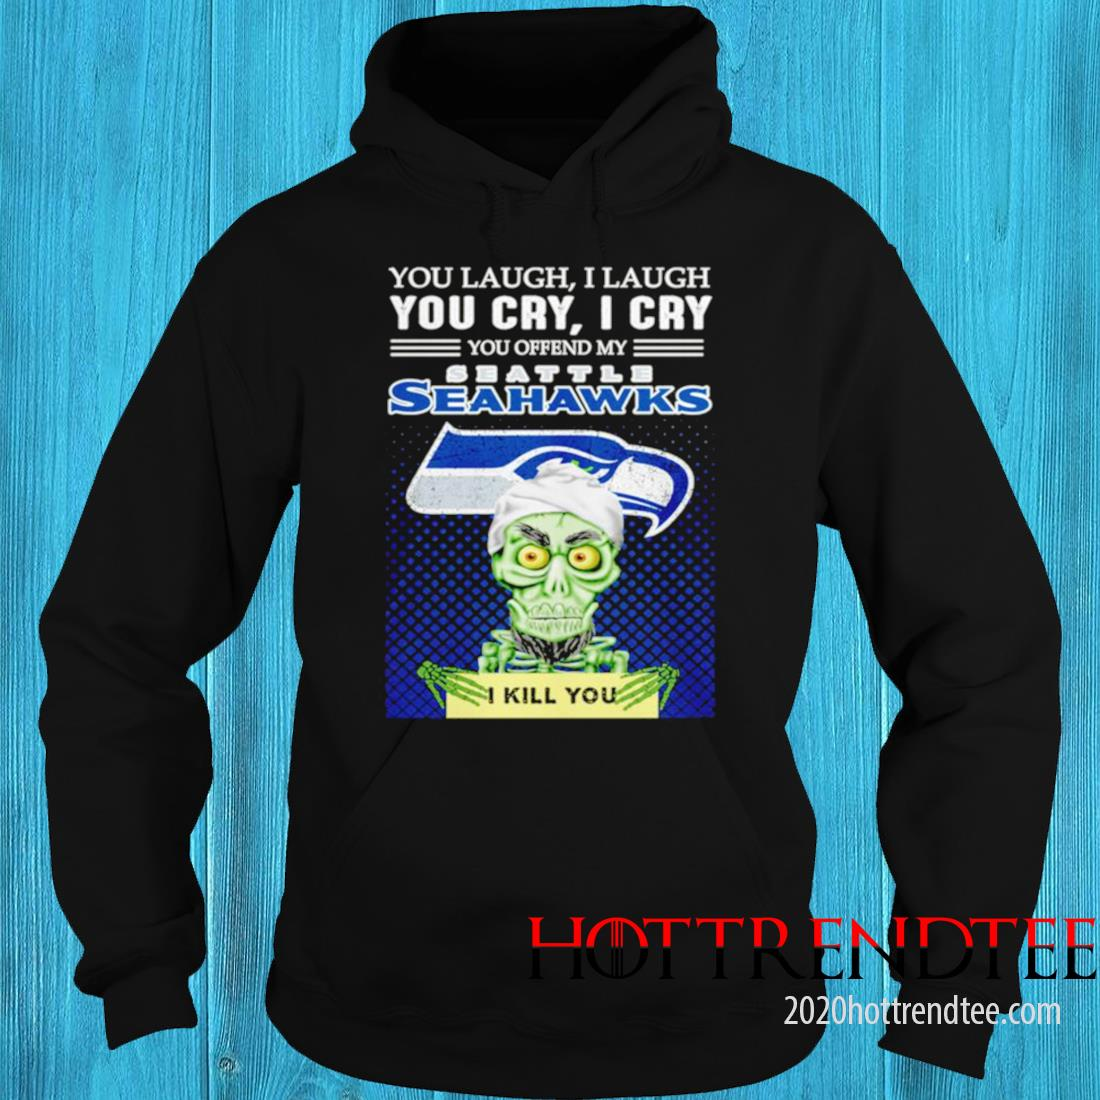 Jeff Dunham You Laugh I Laugh You Offend My Seattle Seahawks Kill You Shirt hoodie